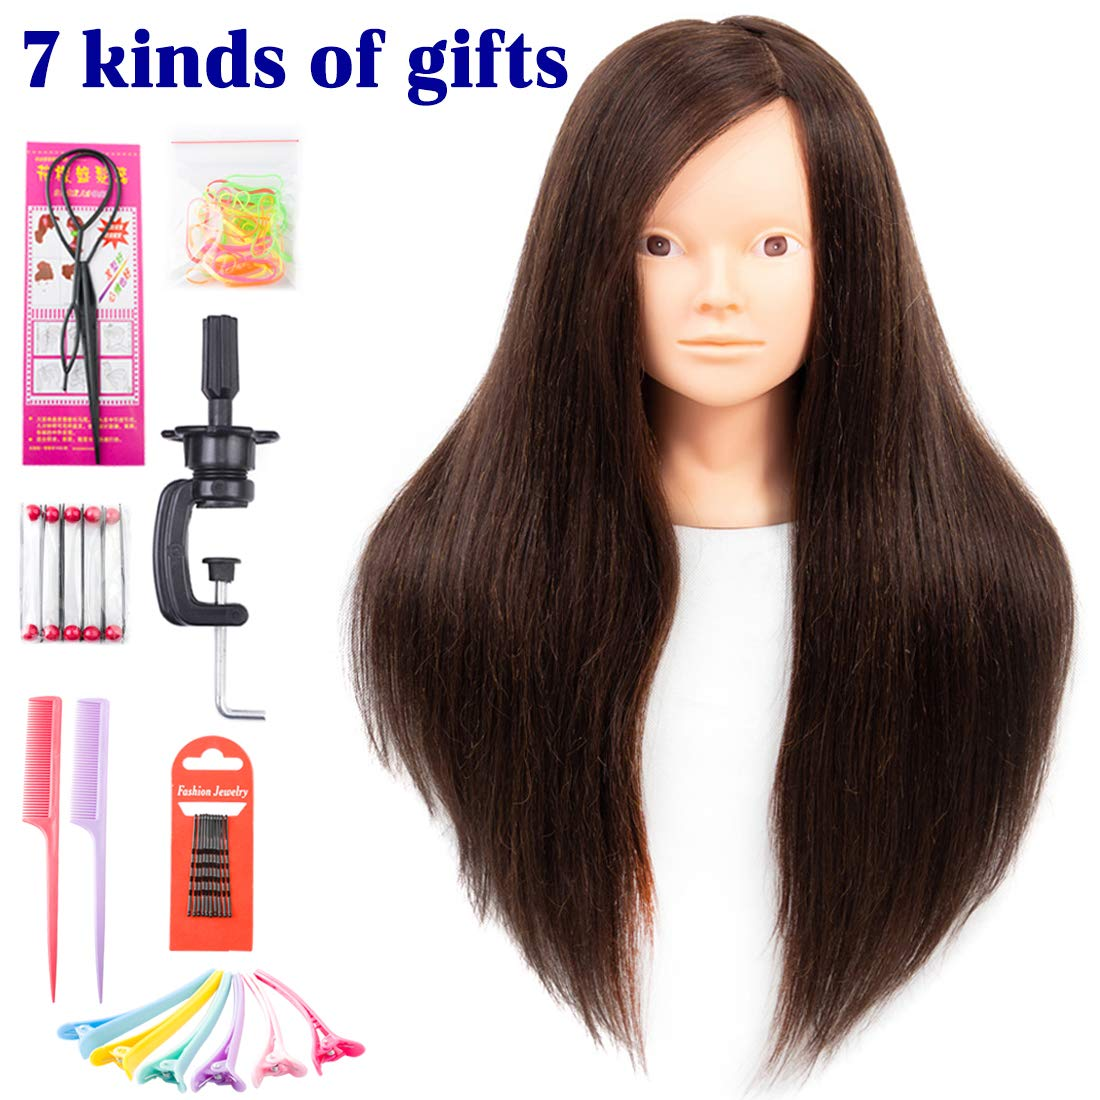 Mannequin Head with Human Hair 60% Straight Professional Bride Hairdressing Training Head with Stand Cosmetology Doll Head for Styling Braid Curl Cut Practice (26 inch without make-up, 4#)